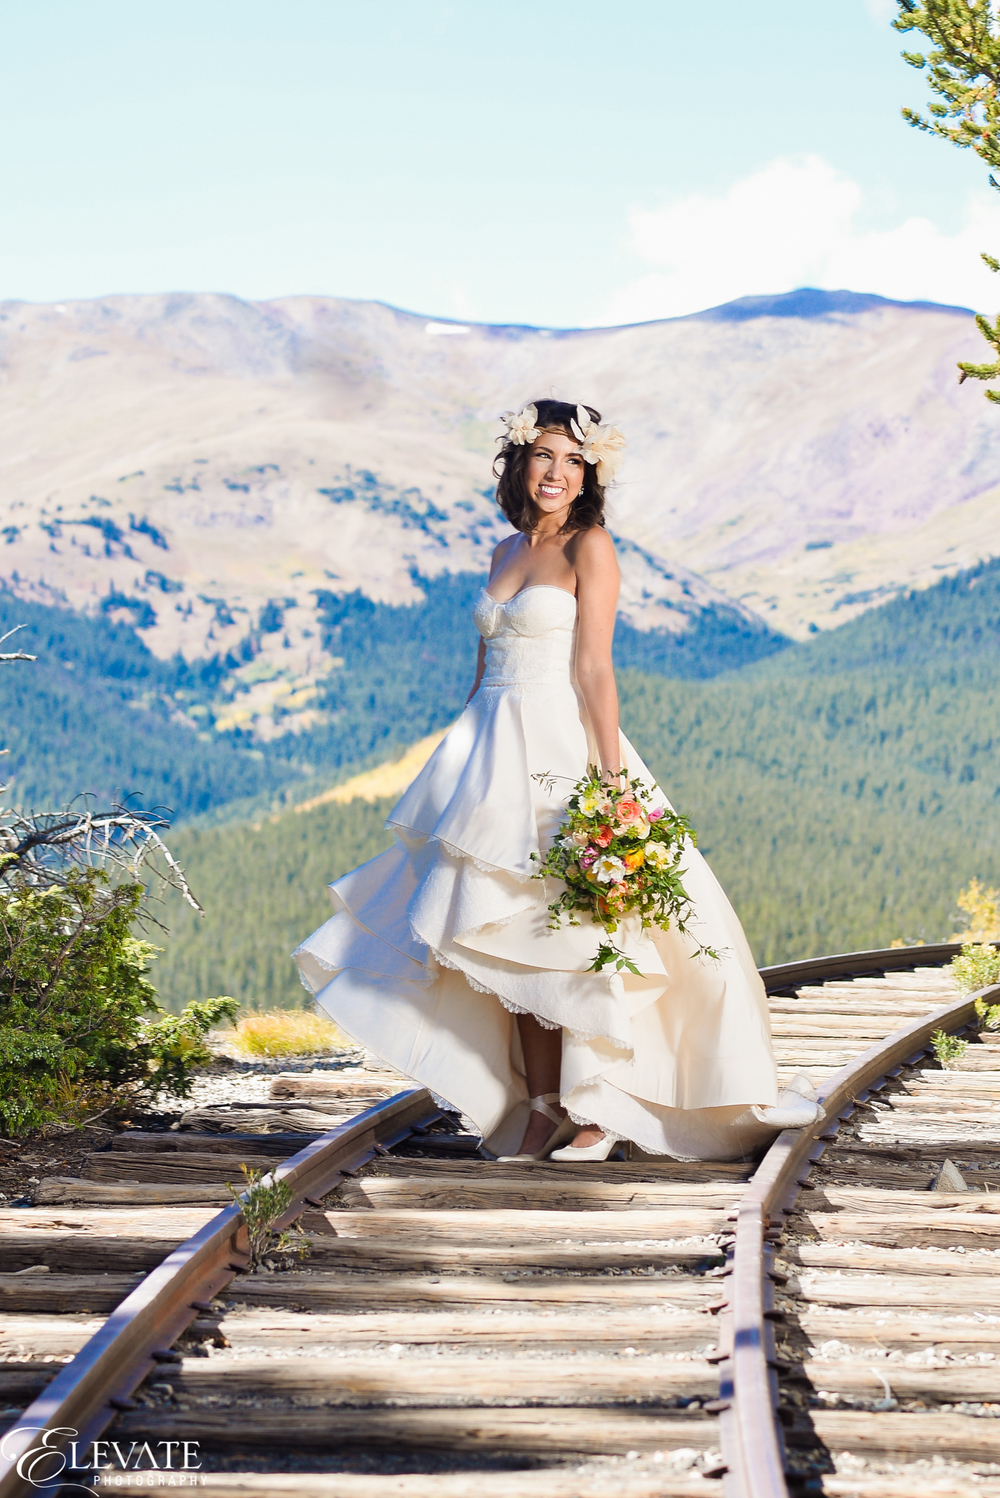 Tiffany | September 18, 2015 | The Lodge at Breckenridge | Breckenridge, Colorado |  Elevate Photography